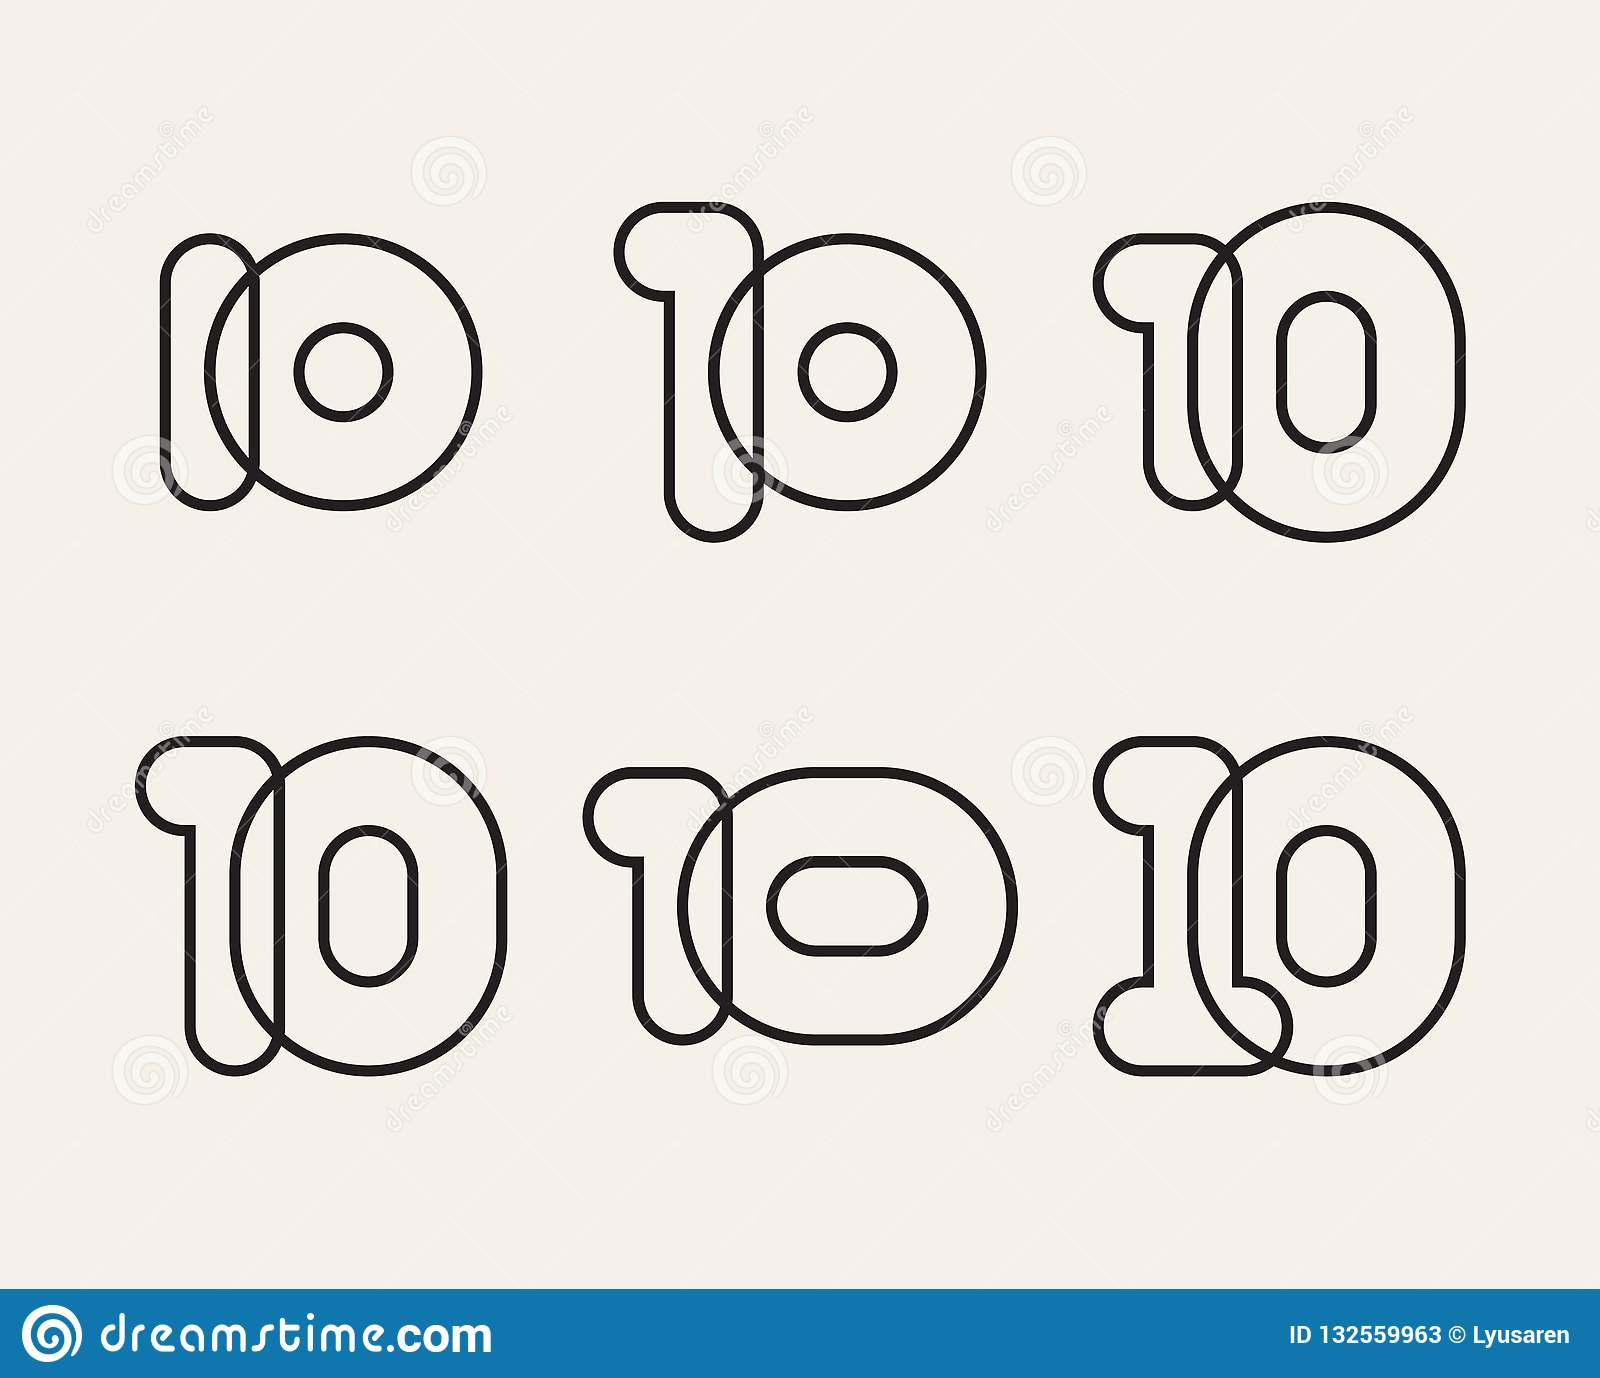 Set Of Linear Numbers 10, Vector Rounded Figures Stock